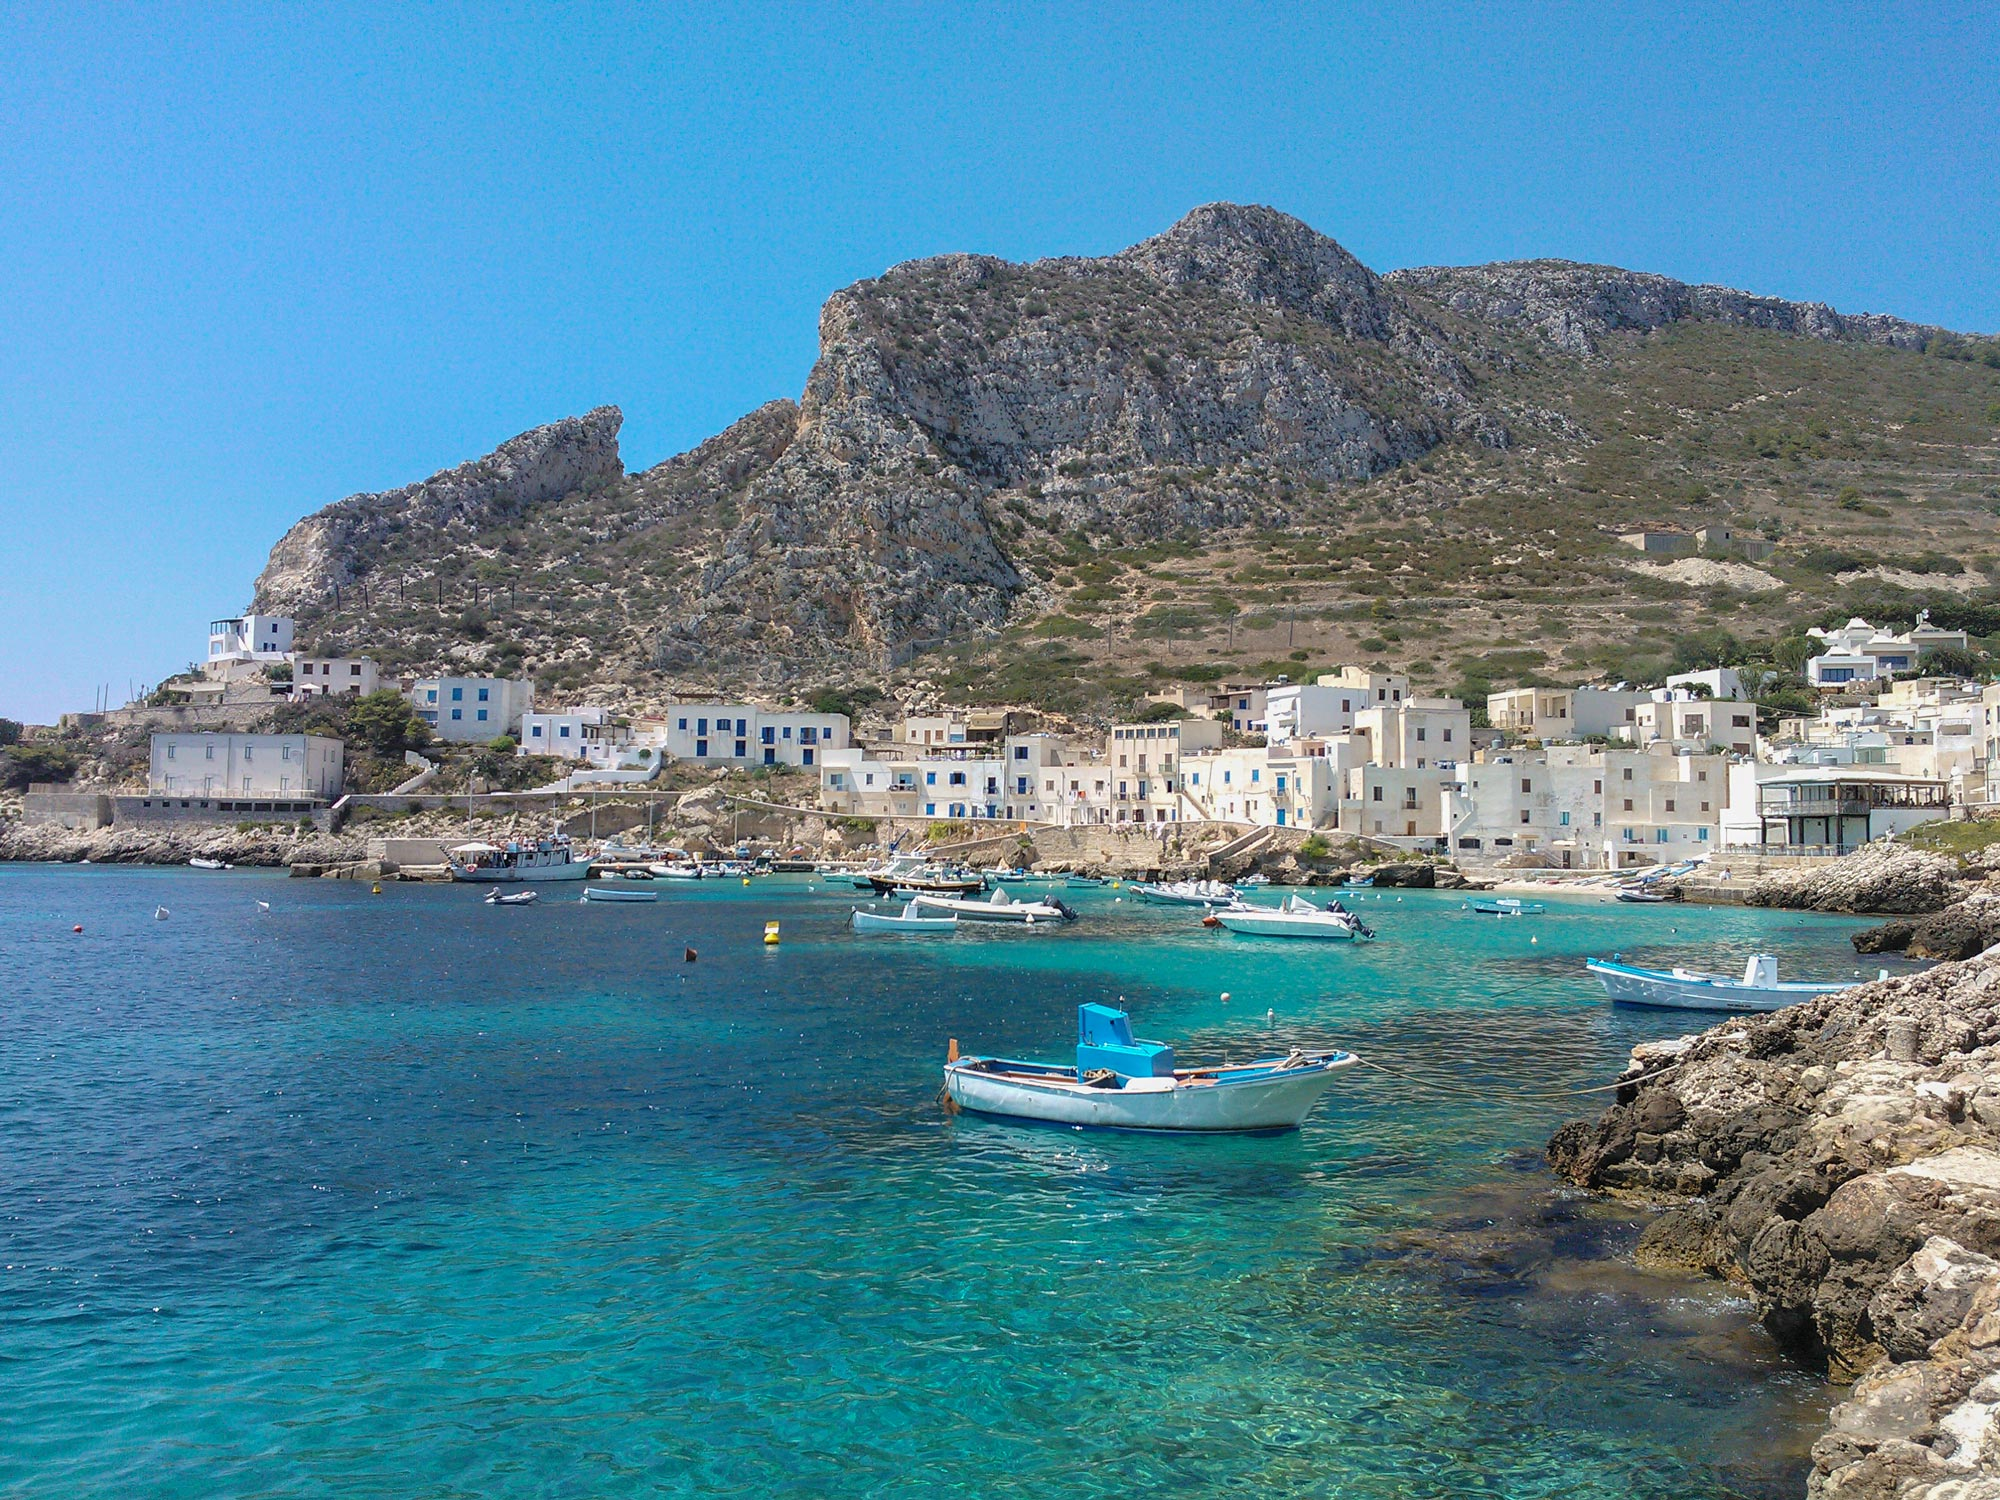 Levanzo village